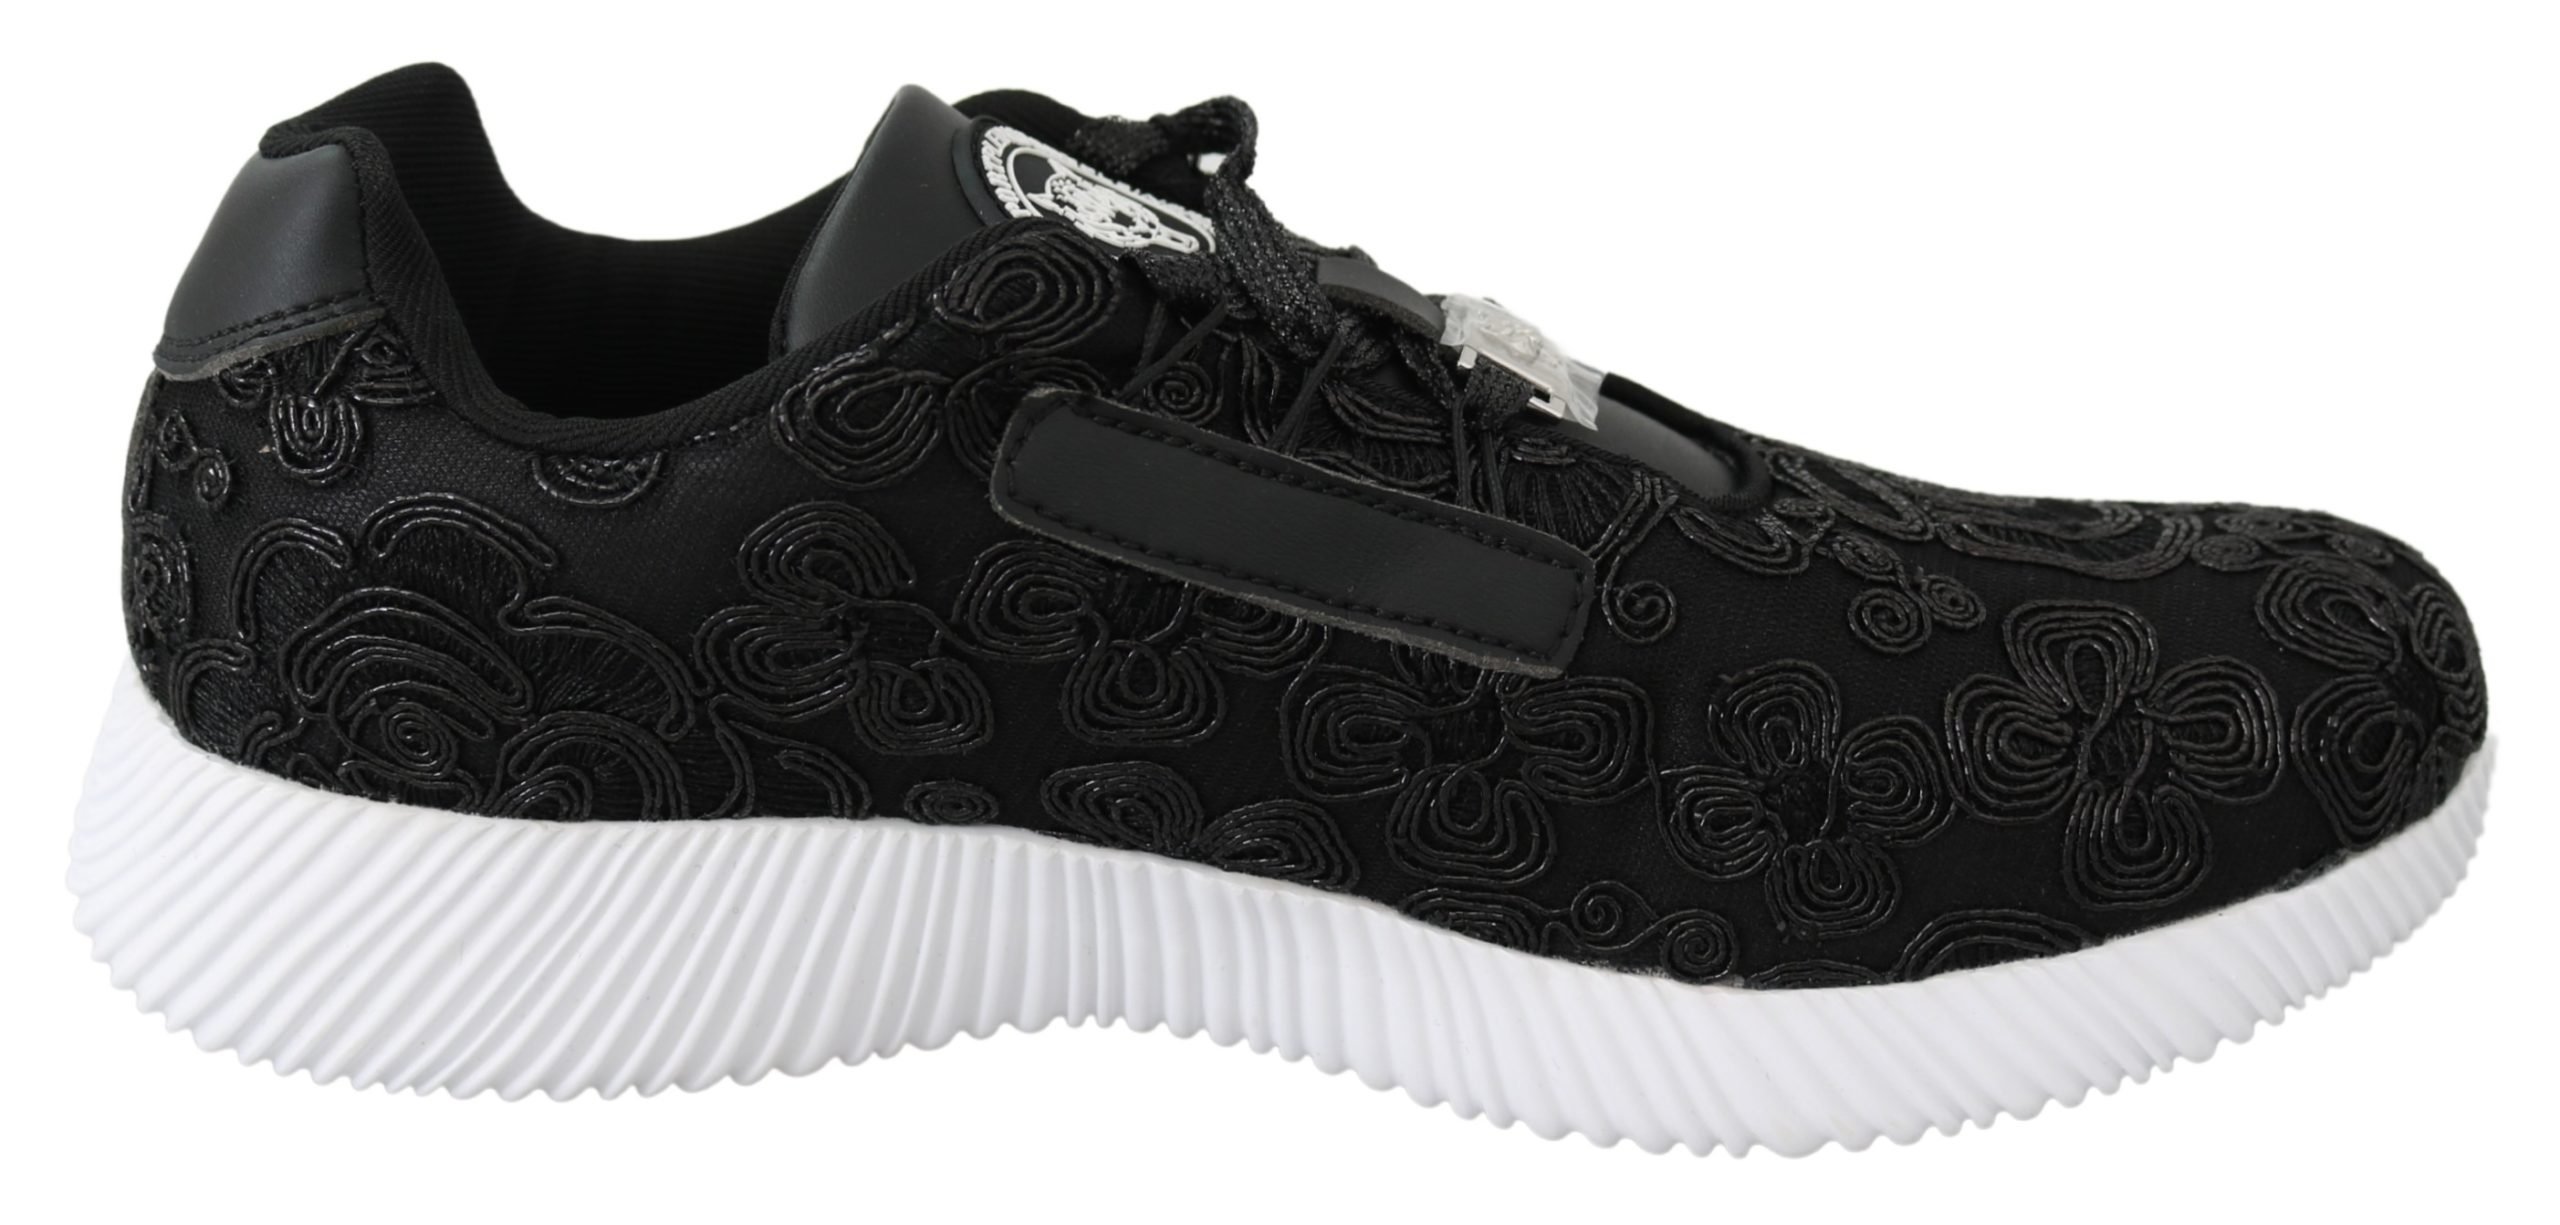 Black Polyester Runner Joice Sneakers Shoes - EU39/US9